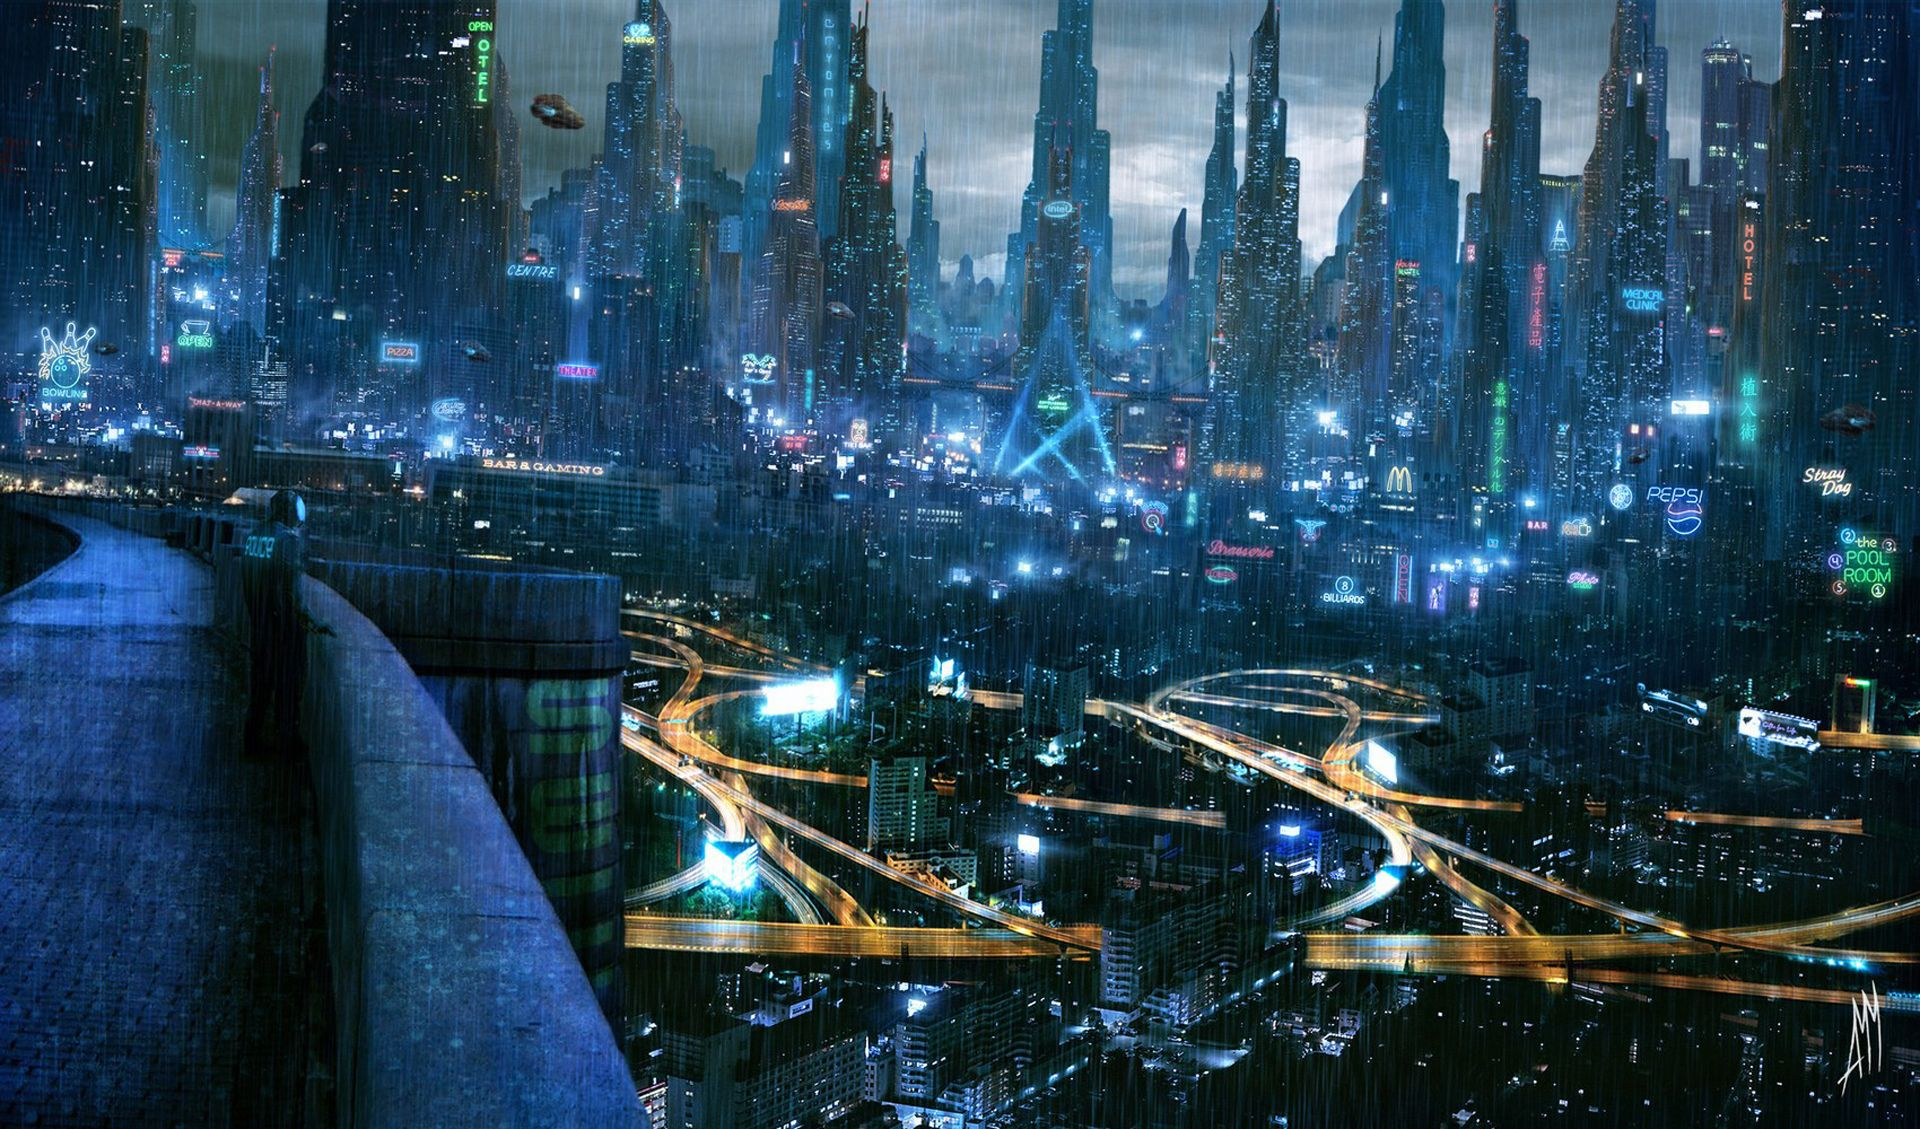 1920x1129 - Sci Fi City Wallpapers 16